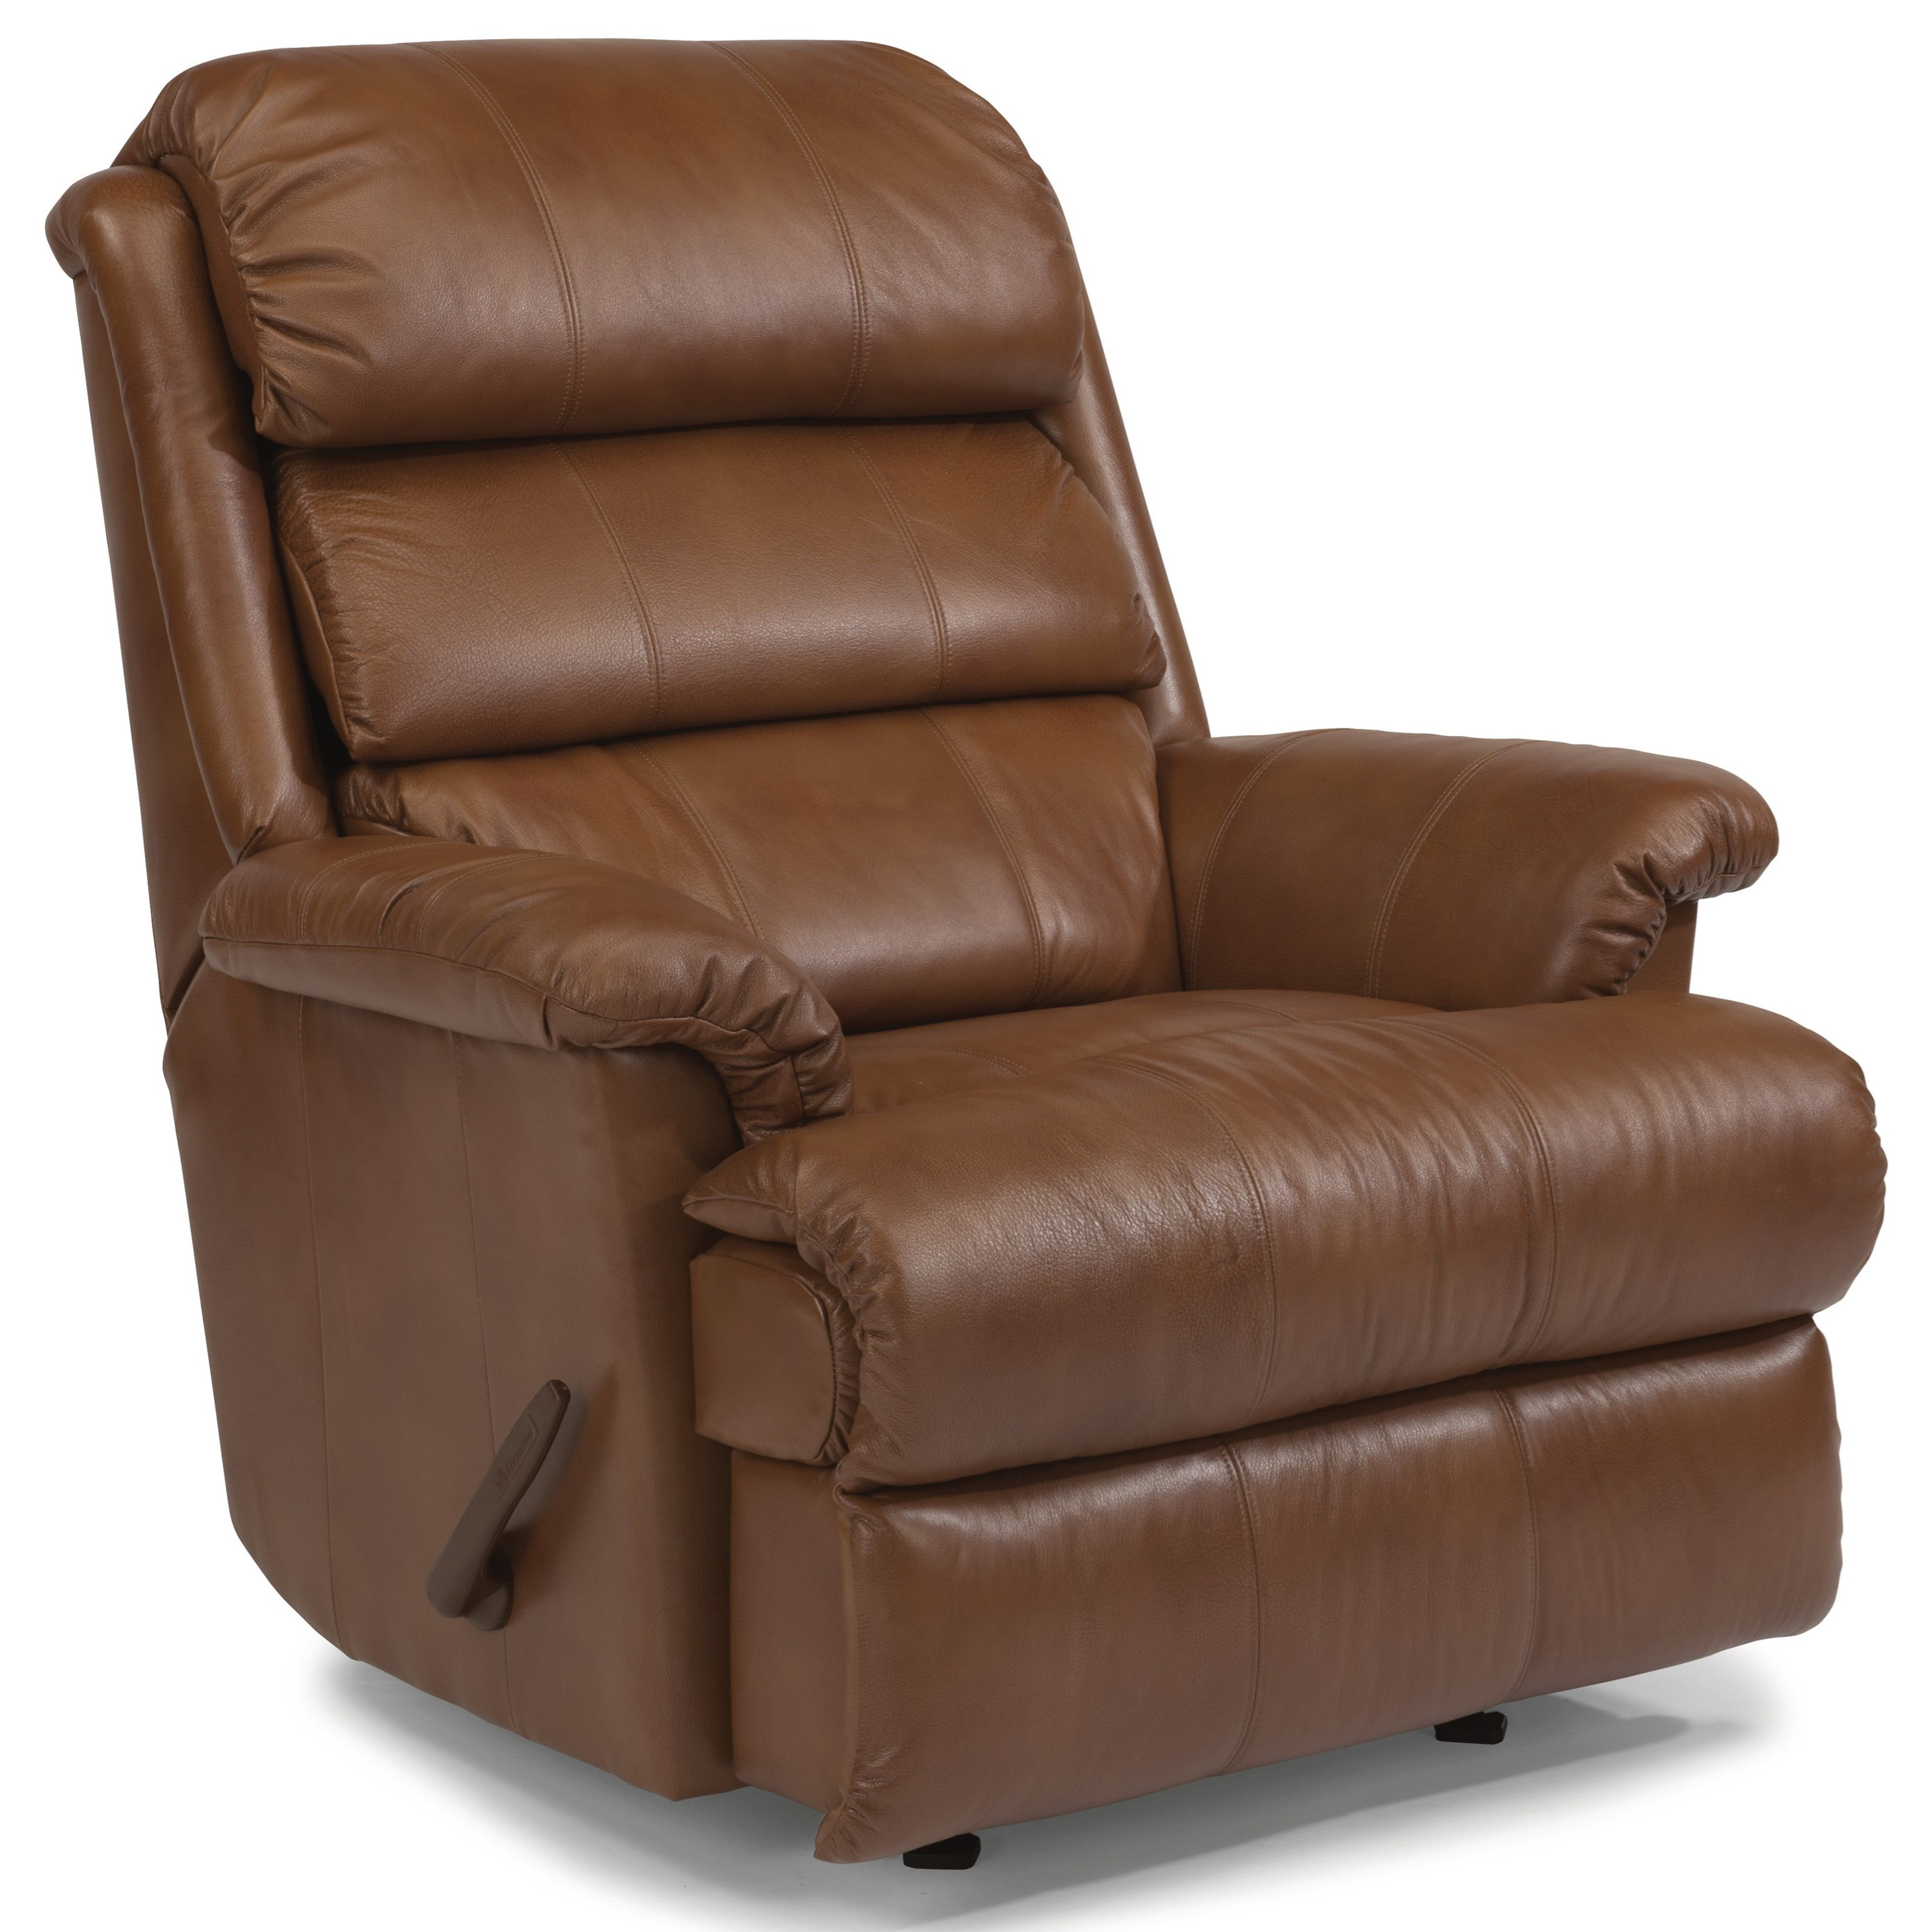 Accents Rocking Recliner by Flexsteel at Williams & Kay